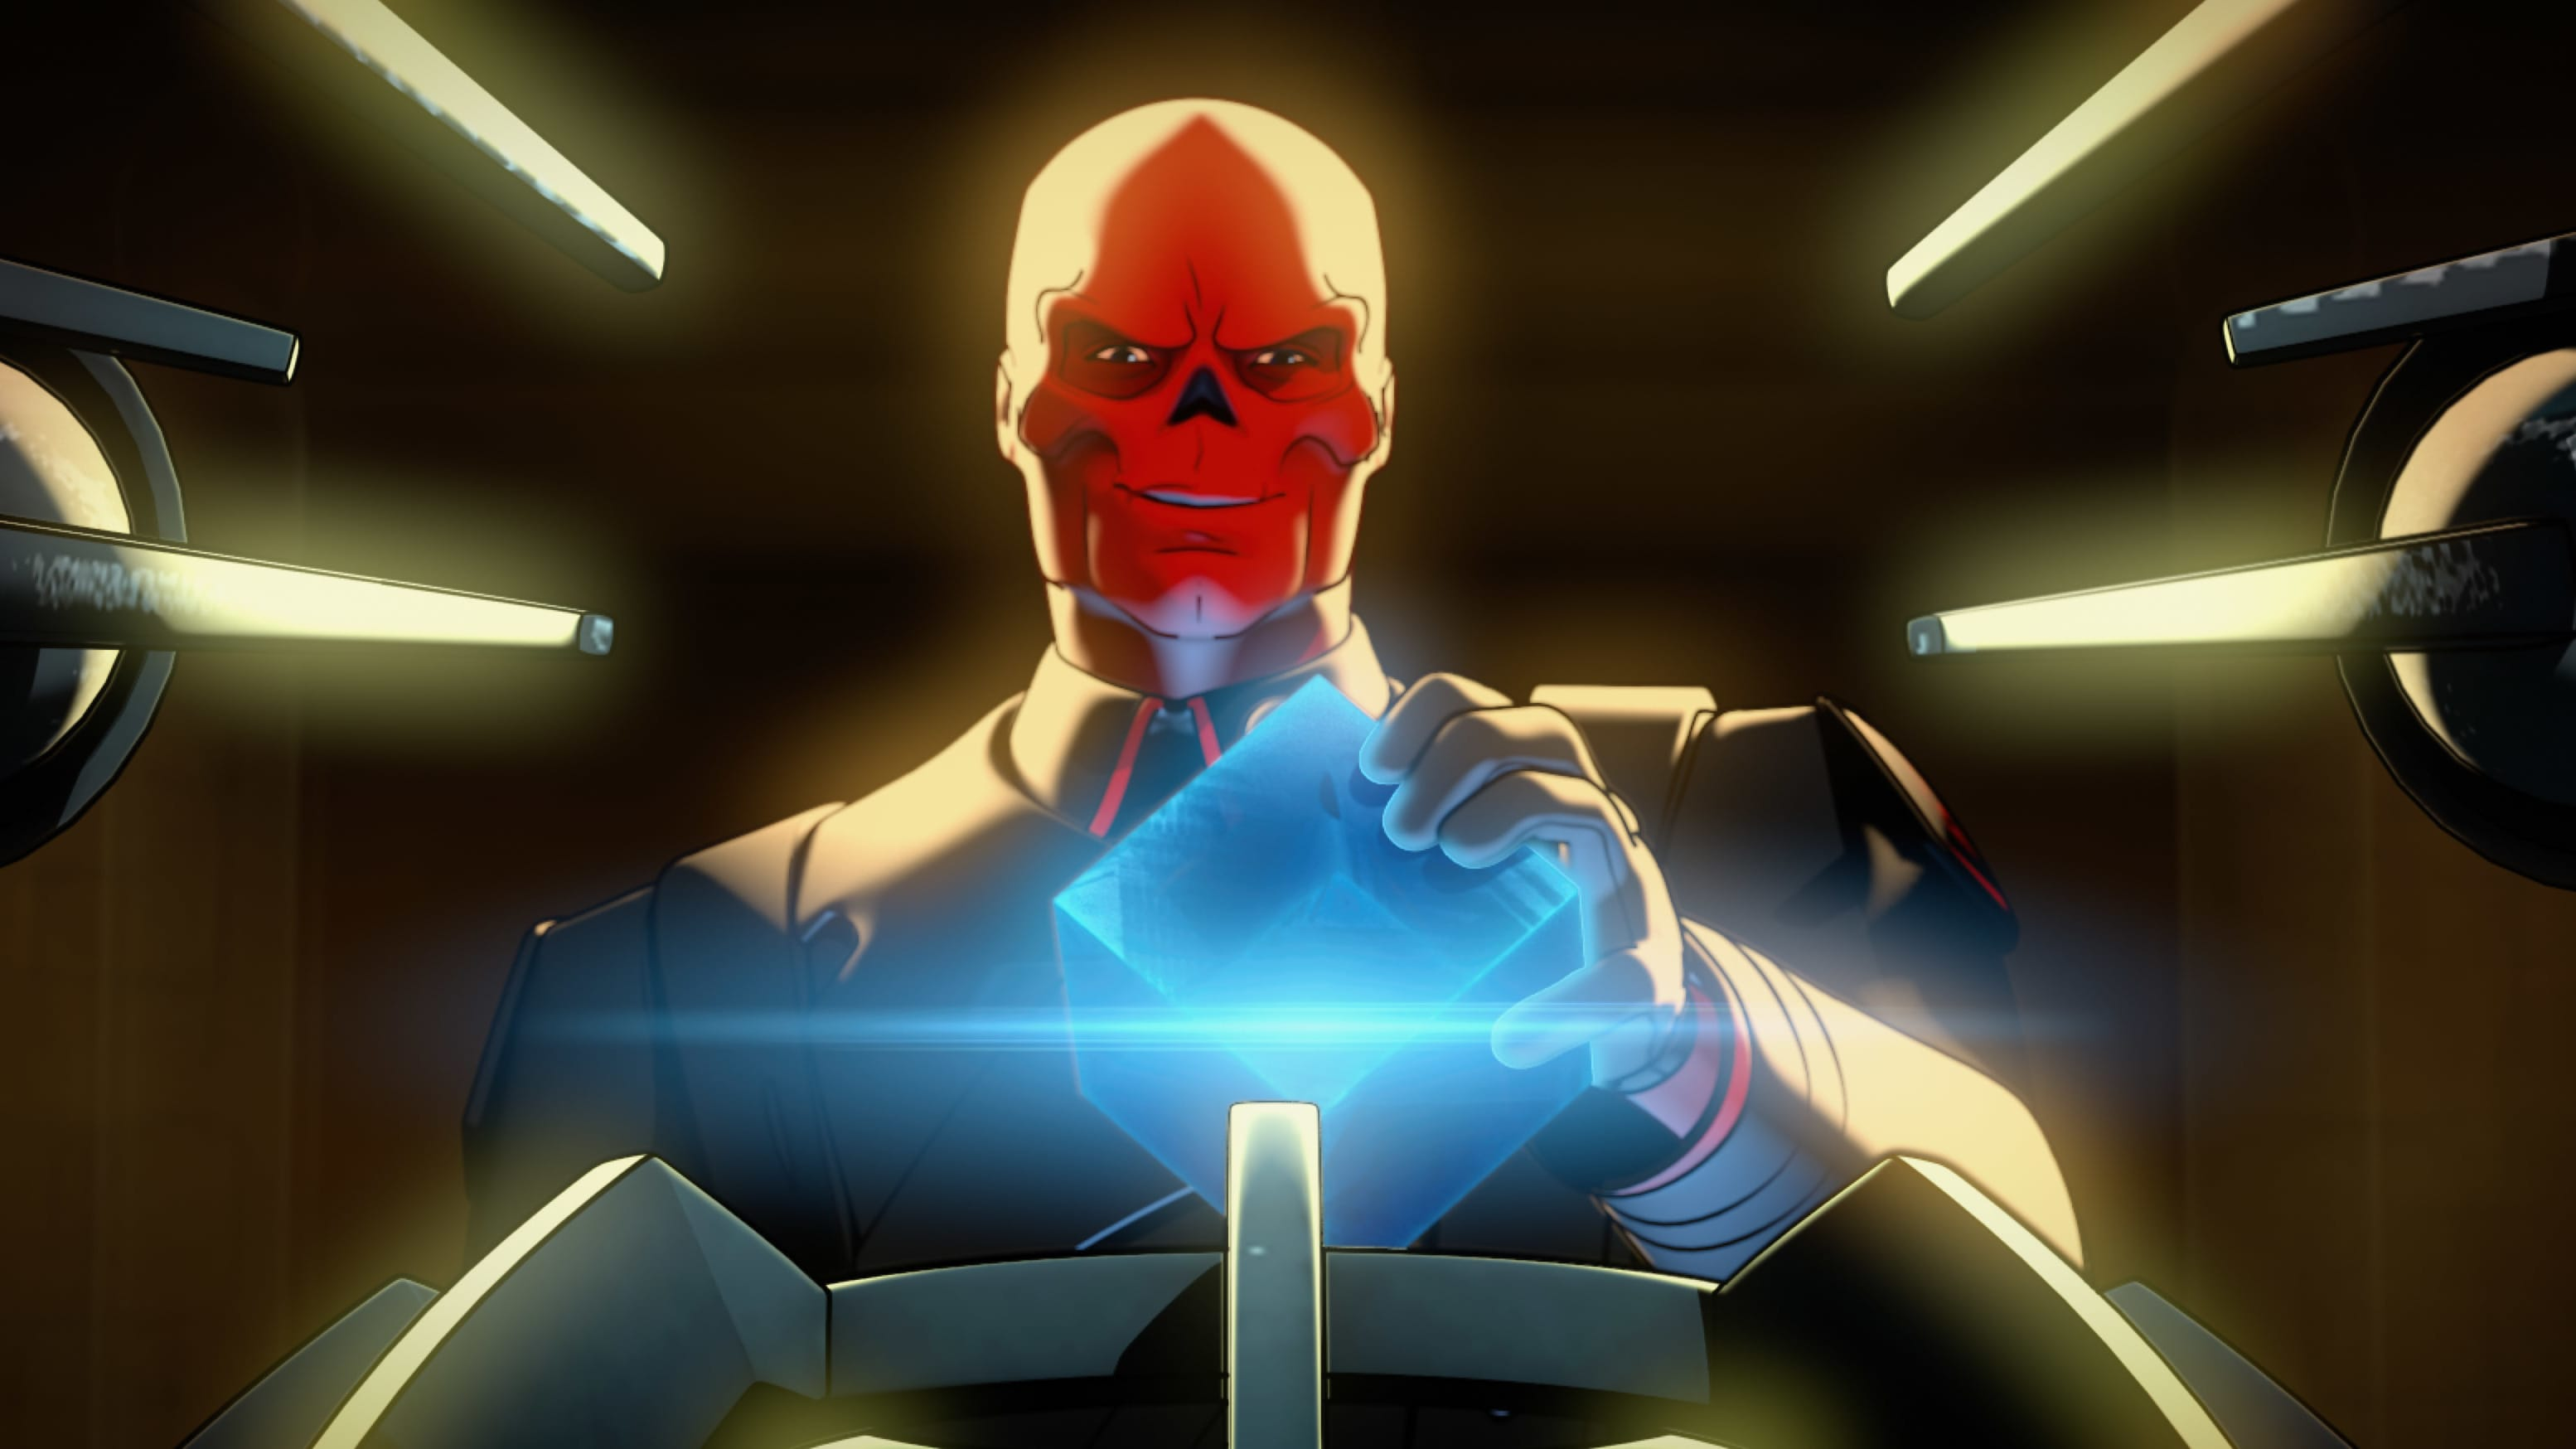 Red Skull in Marvel Studios' WHAT IF…? exclusively on Disney+. ©Marvel Studios 2021. All Rights Reserved.